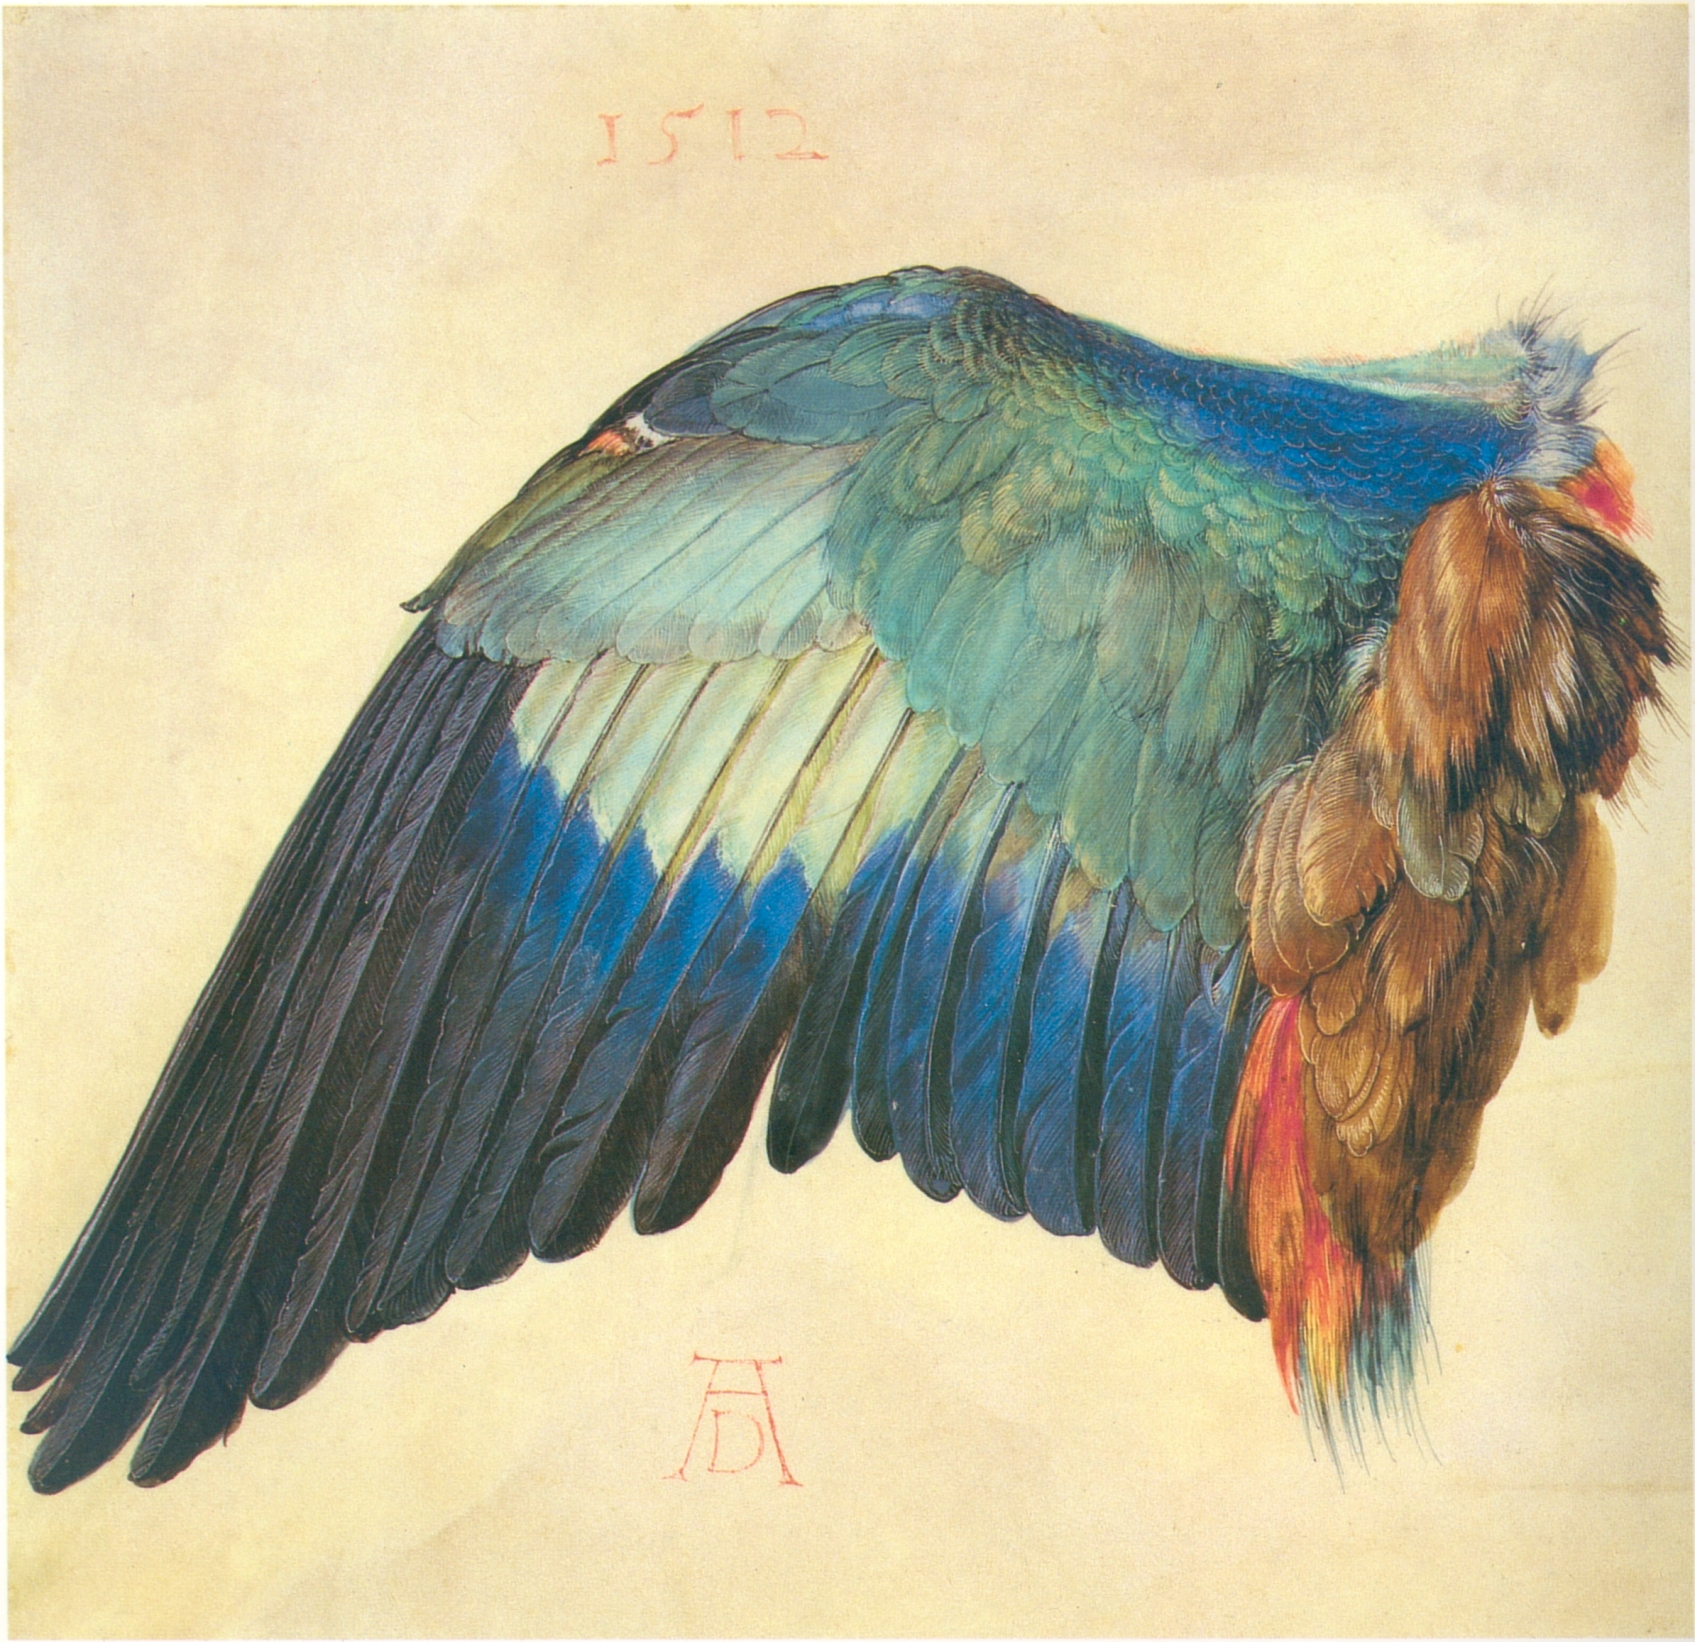 Wing of a European Roller (also known as Wing of a Blue Roller) is a nature study watercolor by Albrecht Dürer.[1] Dürer painted it from a dead specimen in 1500 or 1512. Watercolor and body color on vellum